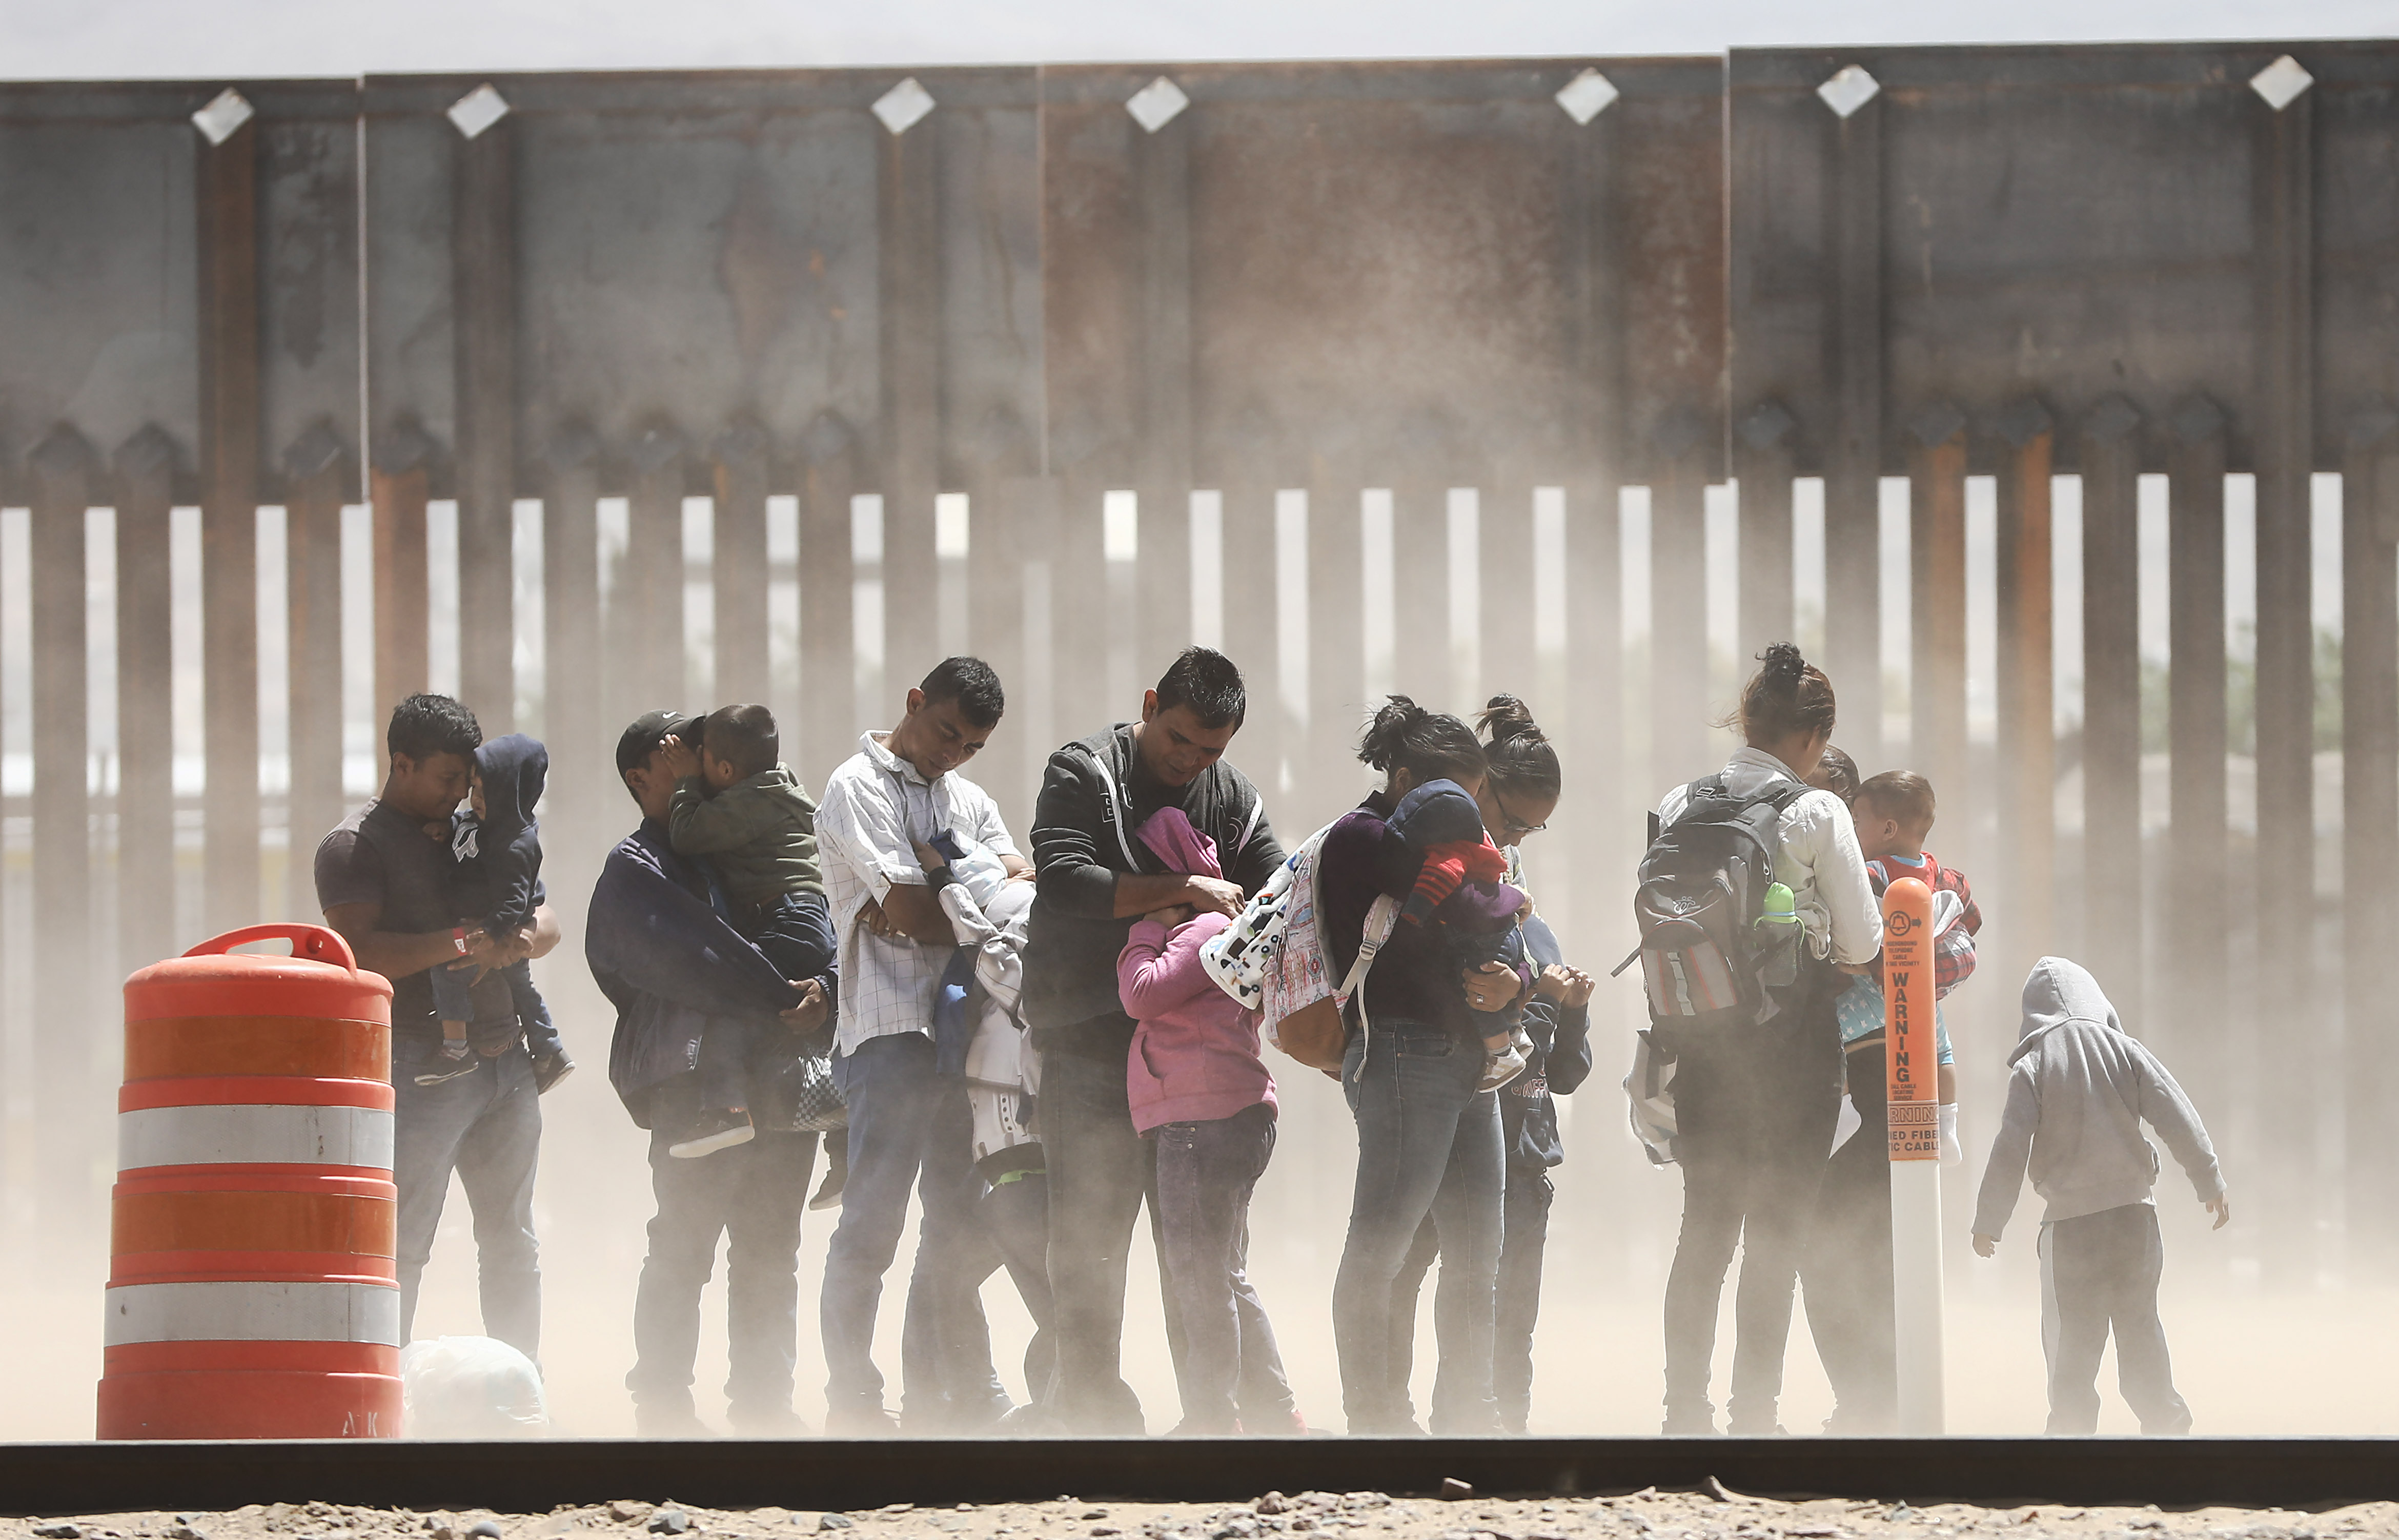 Men, women, and children endure a cloud of dust in front of the US-Mexico border wall in Texas.